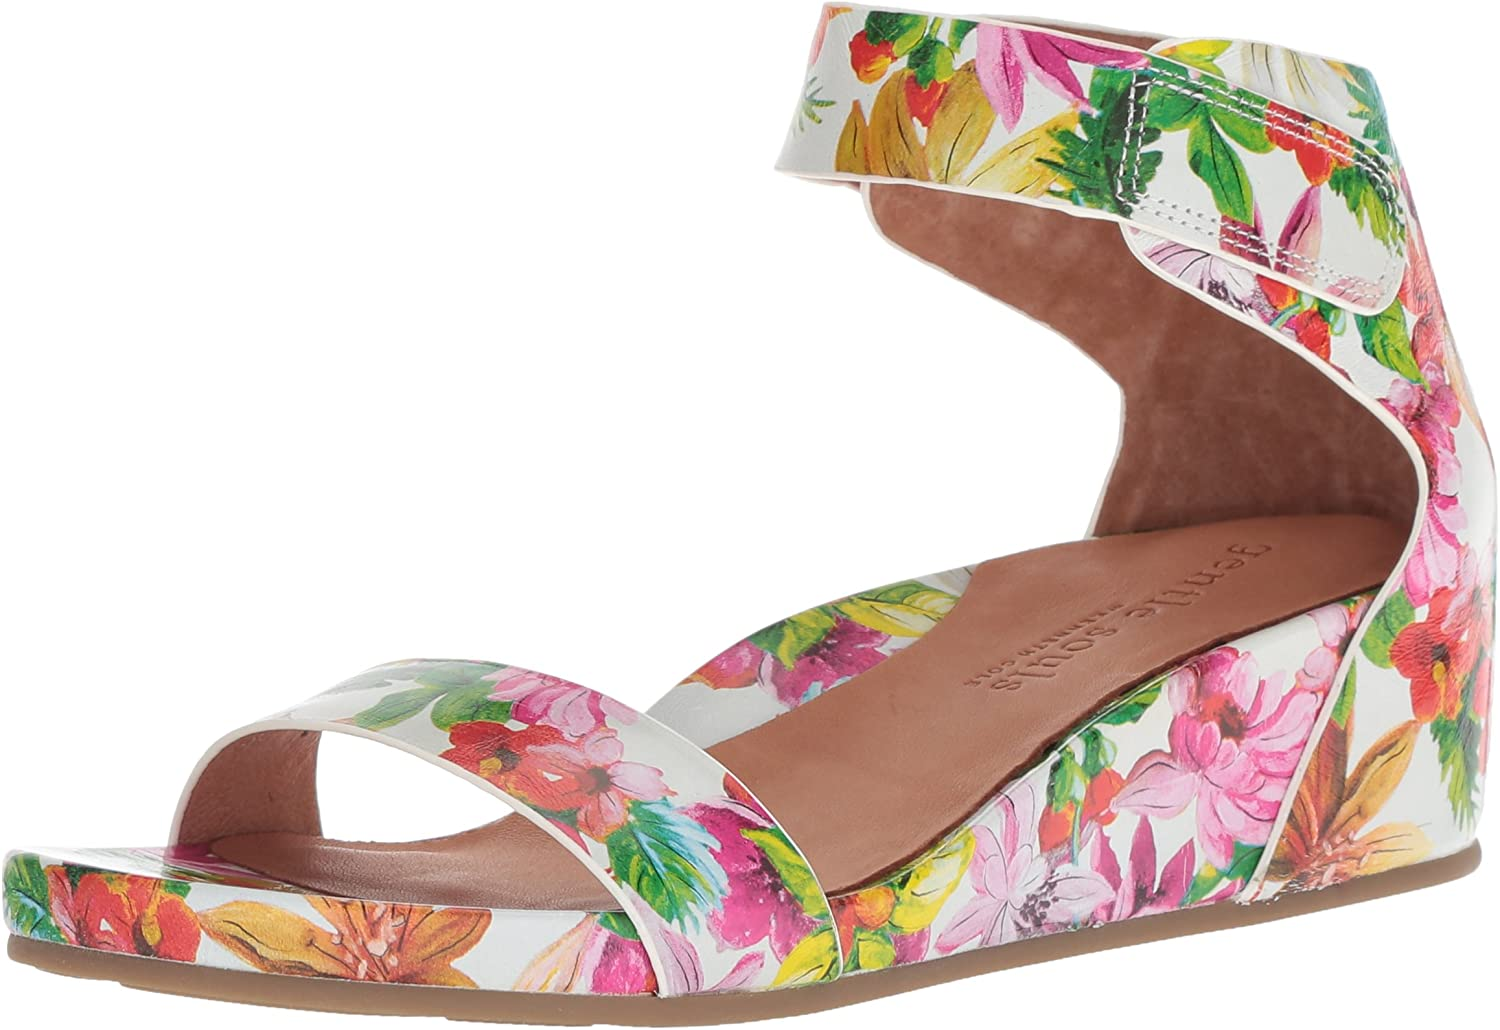 Gentle Souls Womens Gianna Wedge Sandal with Ankle Strap Wedge Sandal